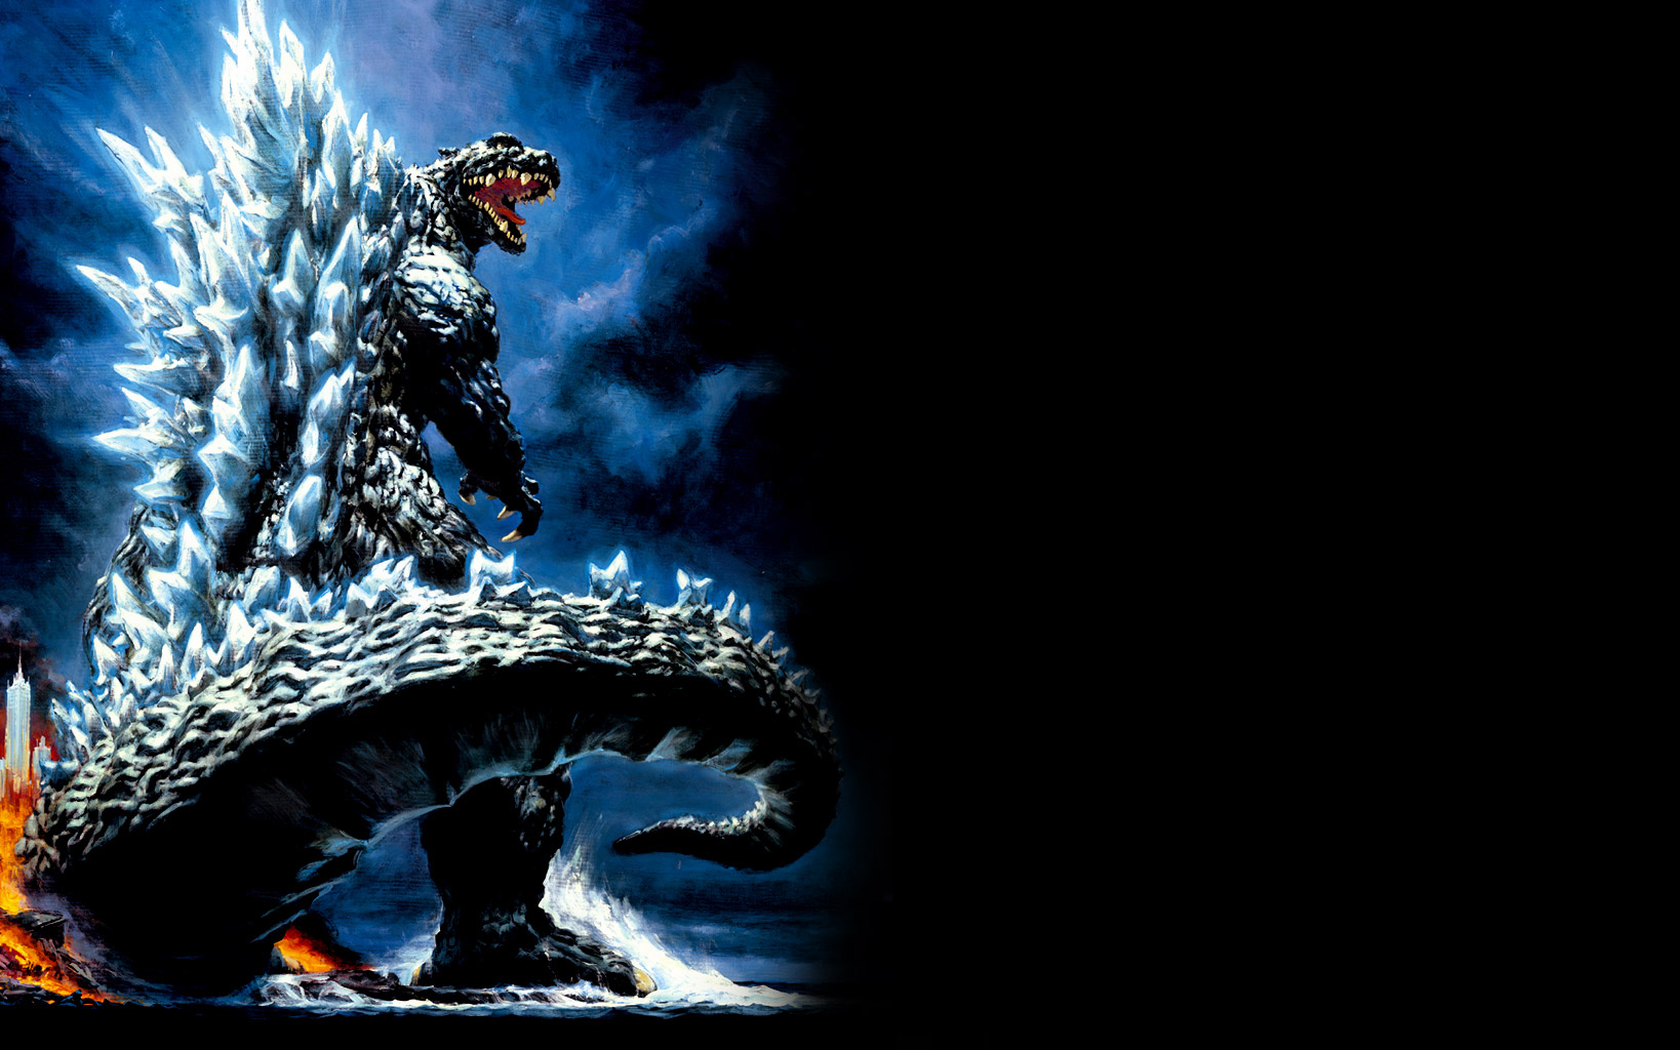 Godzilla Computer Wallpapers Desktop Backgrounds 1680x1050 ID 1680x1050